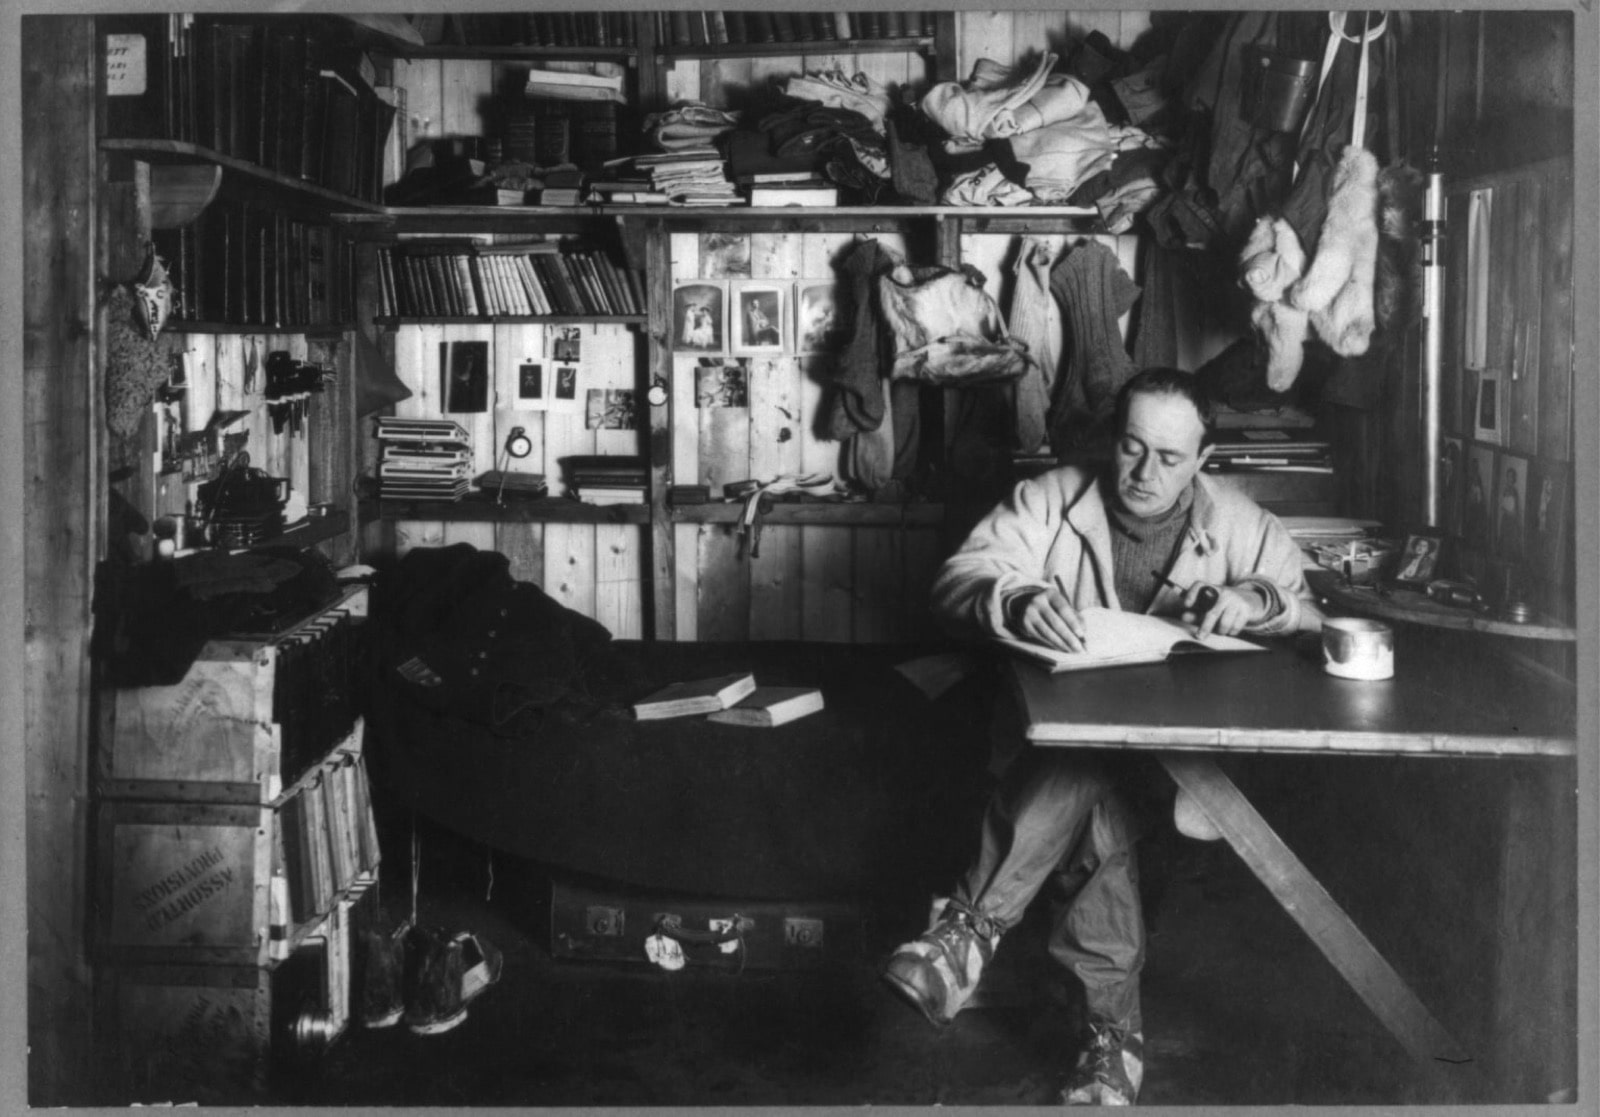 Scott writes some of his last words in his diary. While he ultimately reached the South Pole along with four other members of the crew, a Norwegian team  beat  him by about 33 days. Scott and the other men in his party died on the return journey. Photo by Herbert G. Ponting/ Library of Congress